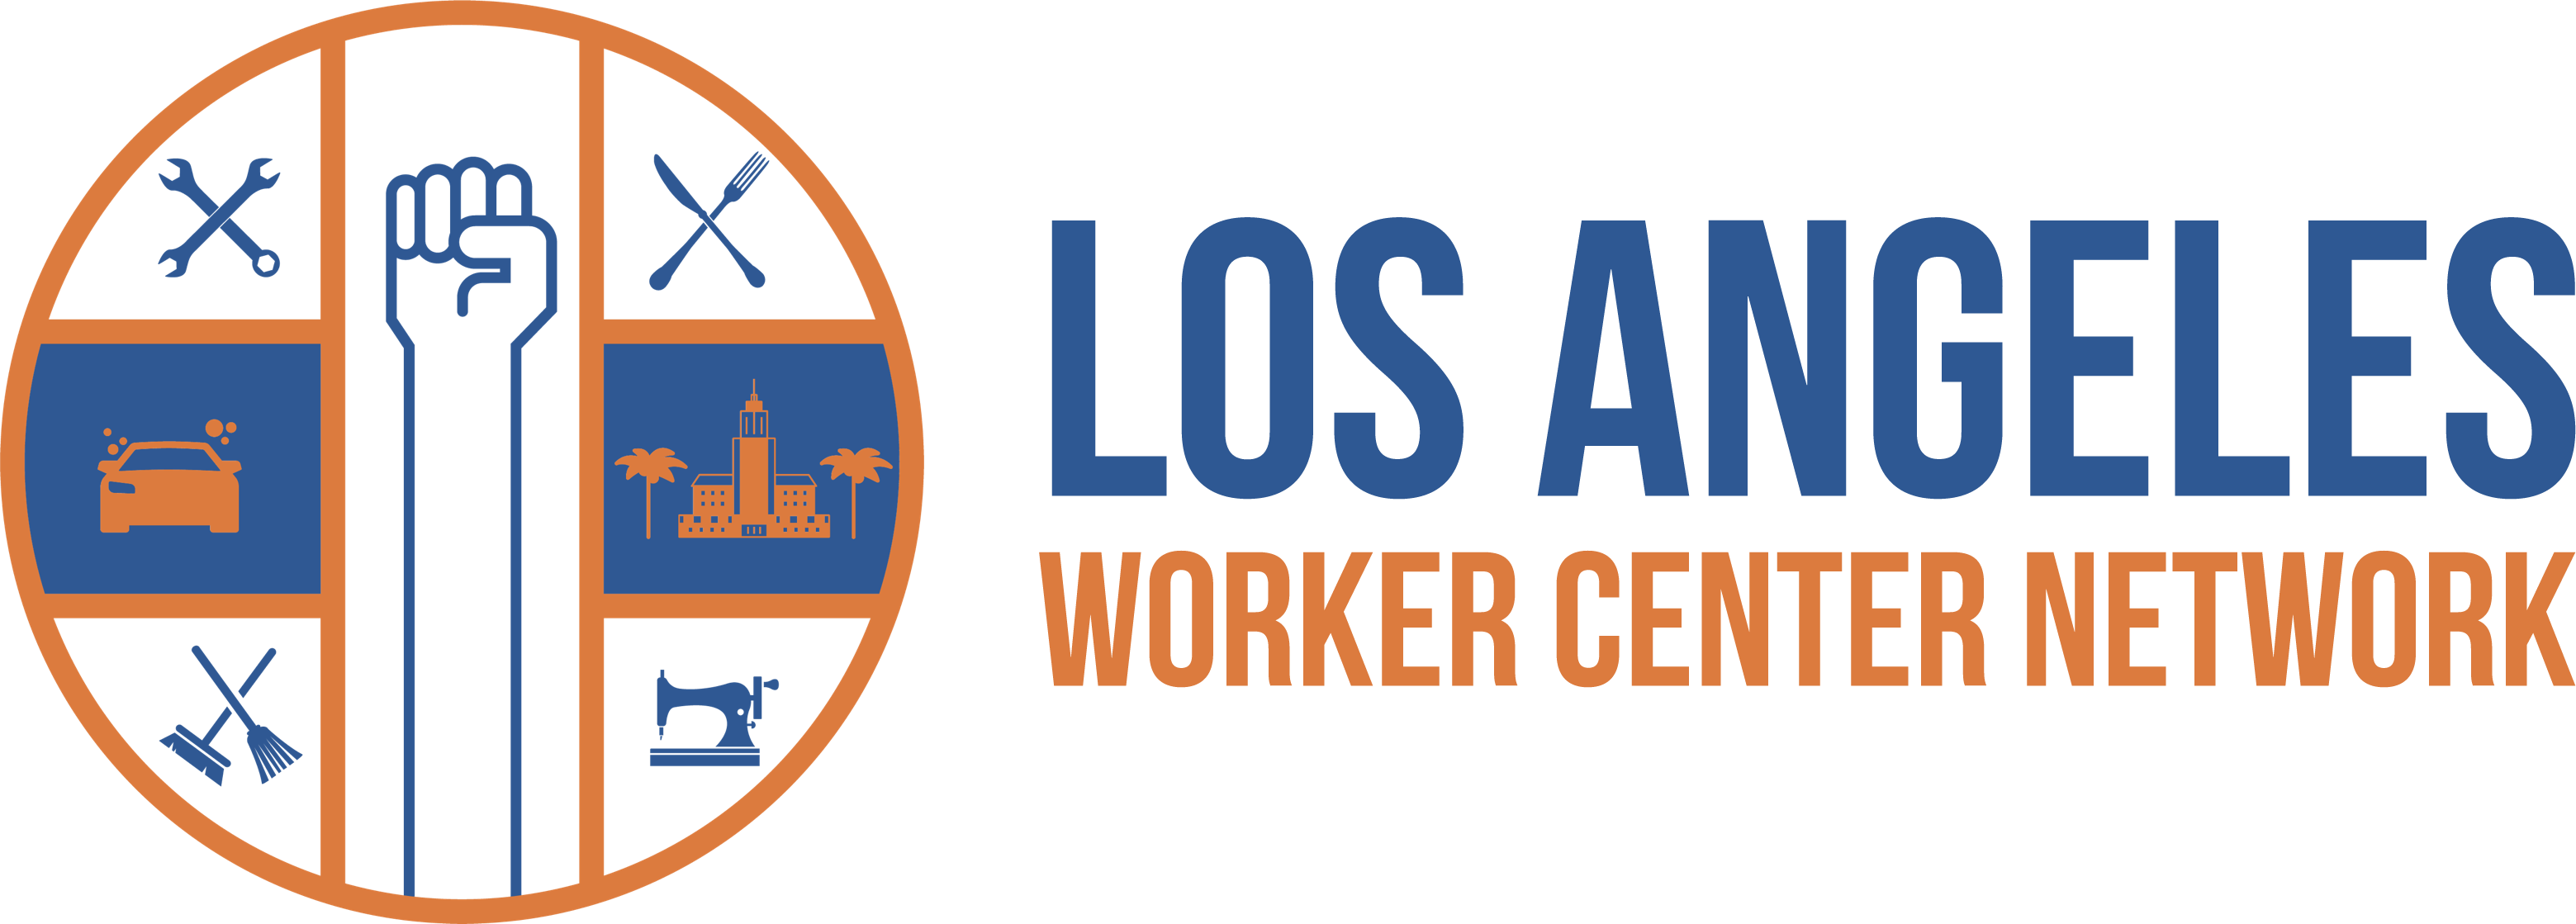 Los Angeles Worker Center Network